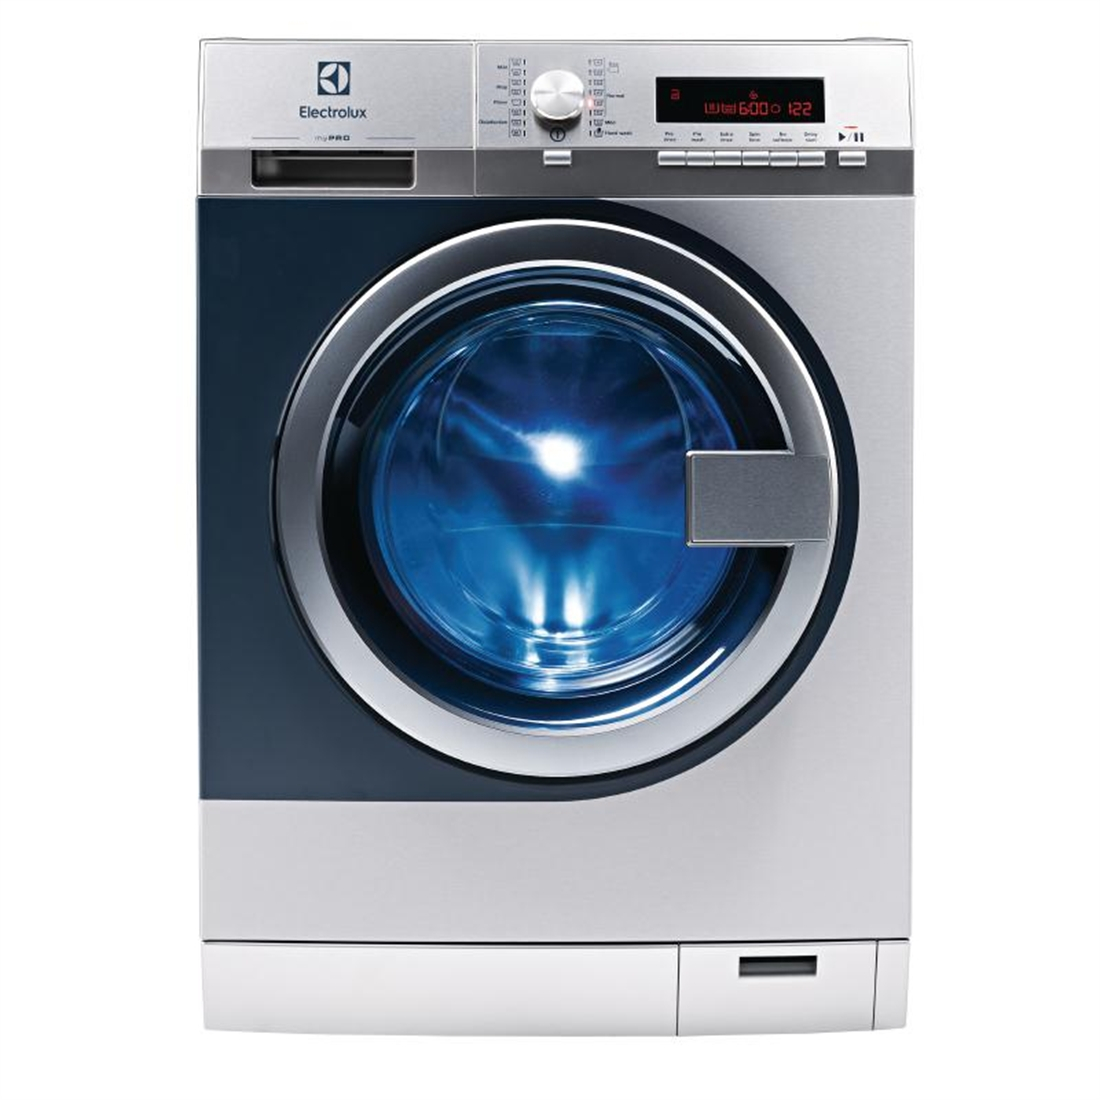 Electrolux myPRO Washing Machine WE170P With Pump